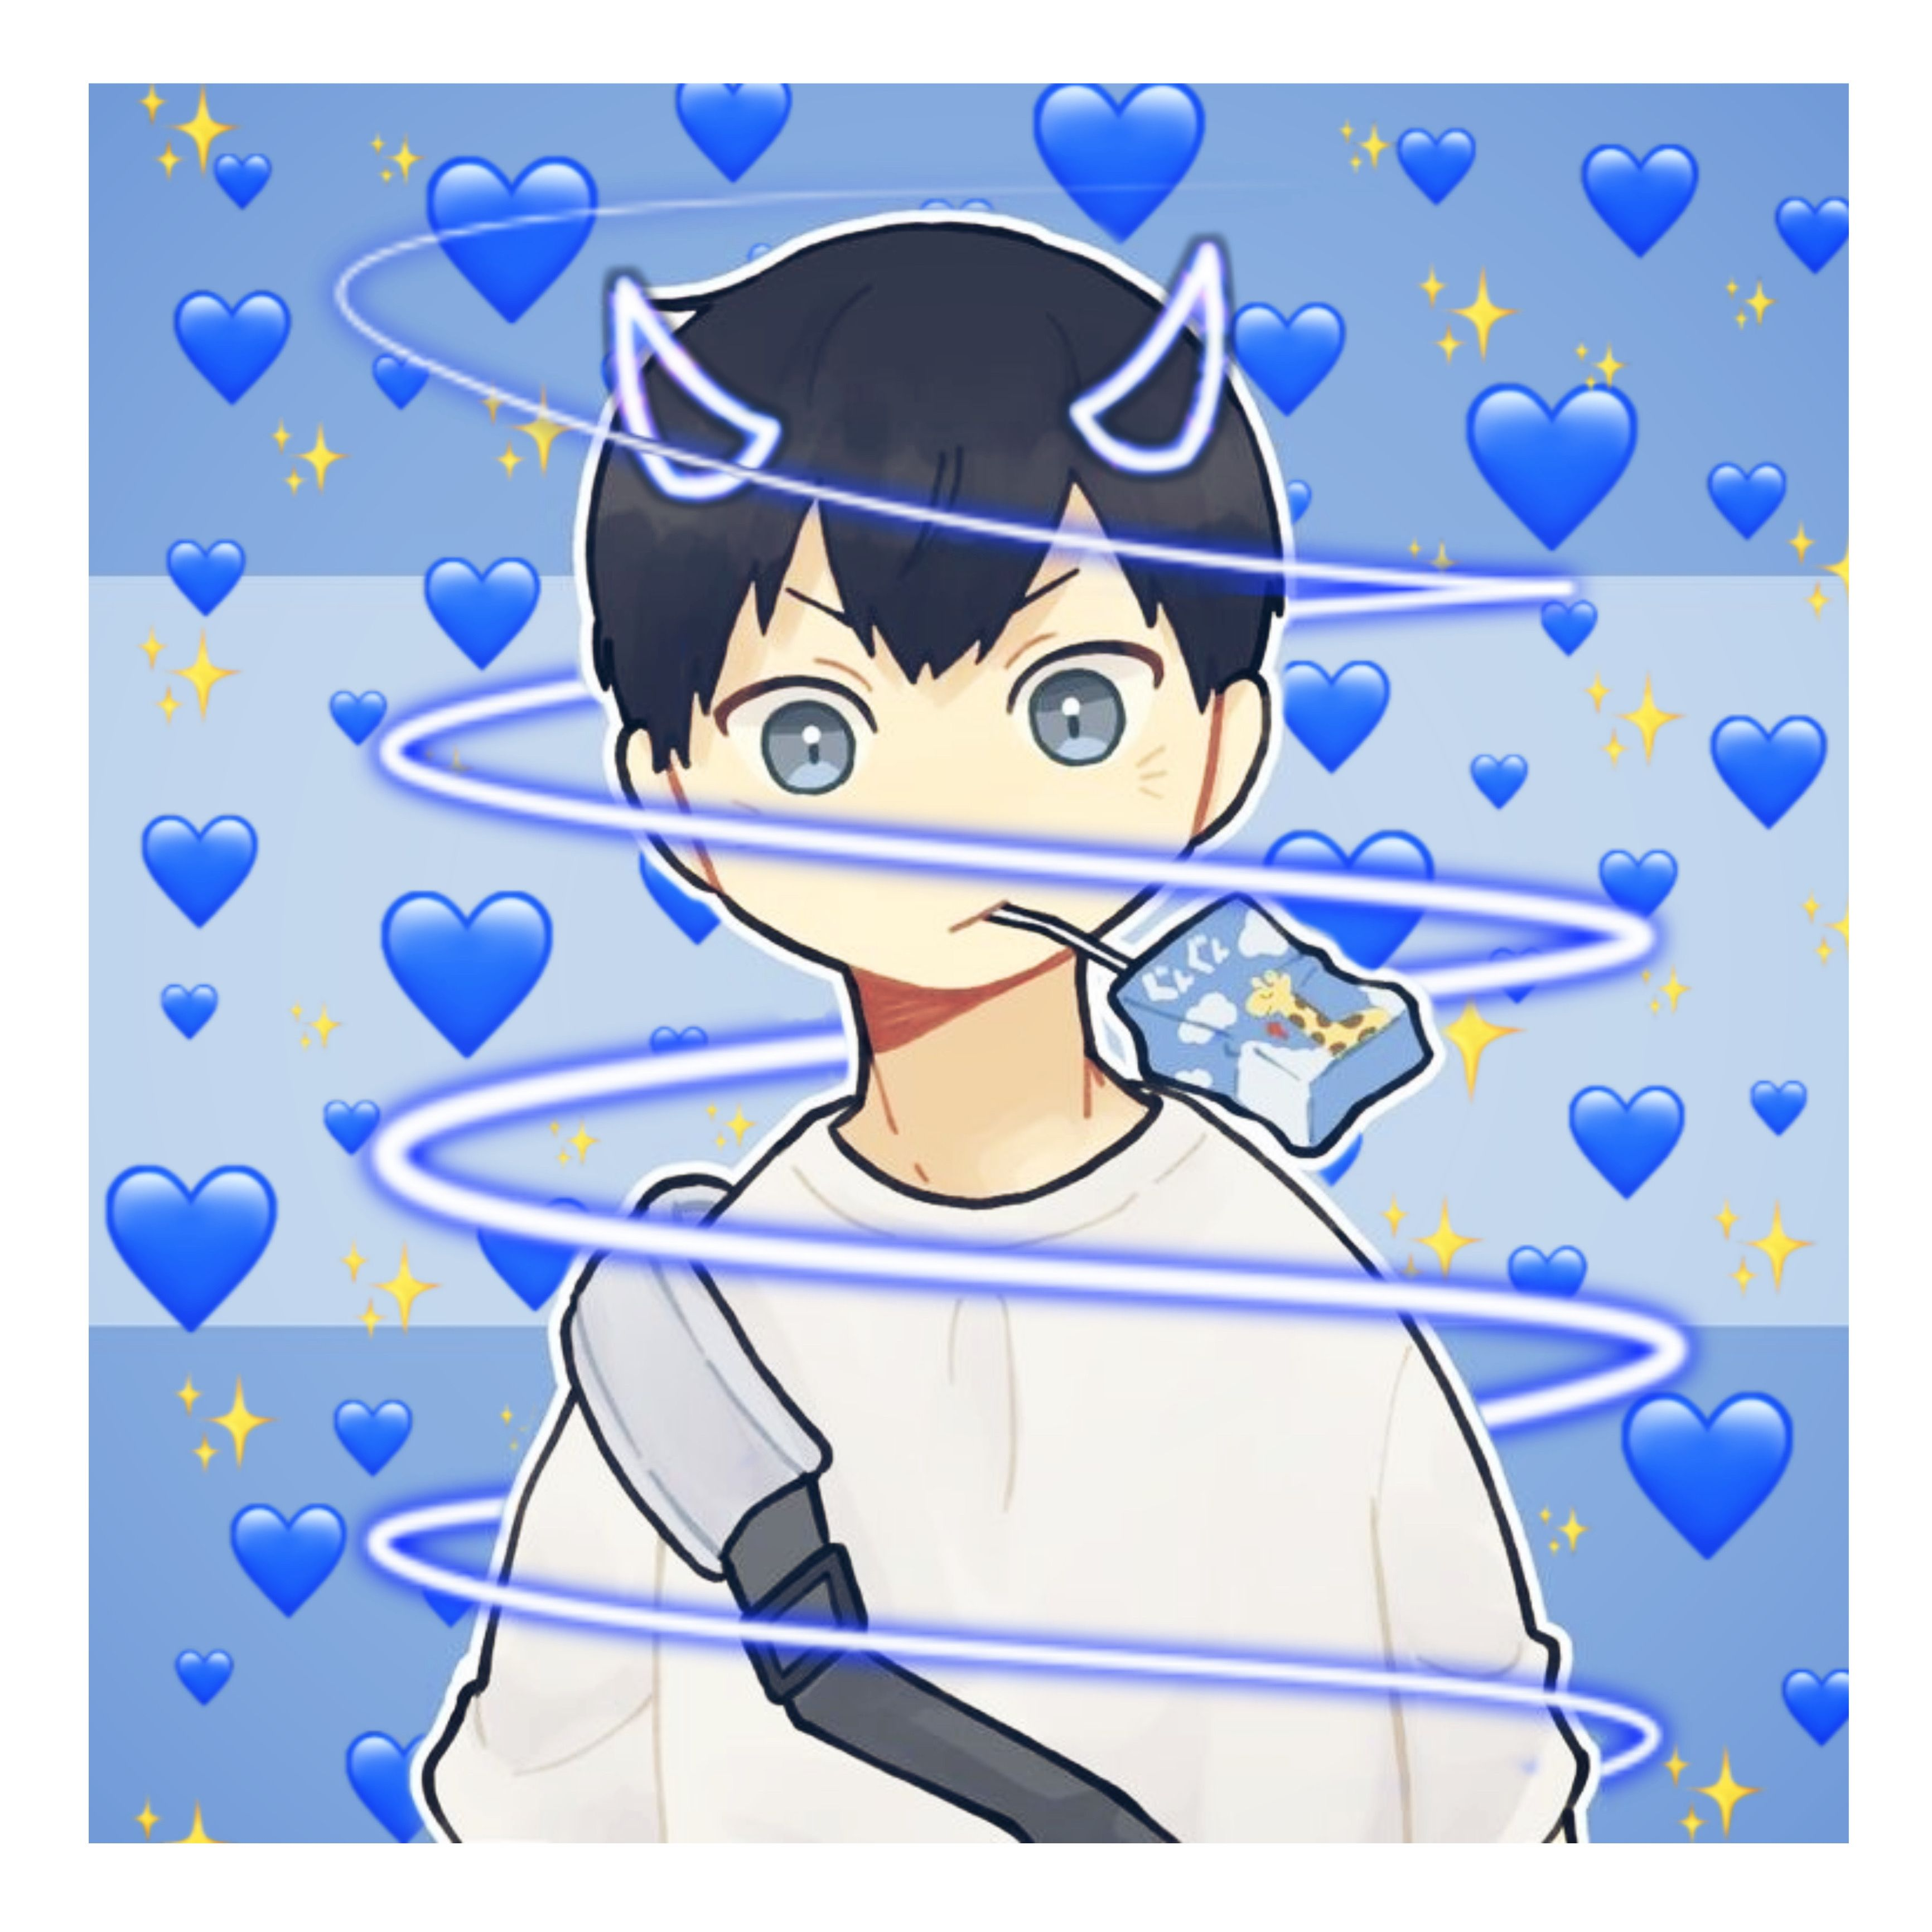 Kags Is So Cute I Ll Drink From His Milk Haikyuu Haikyuuedit Haikyu Haikyuukageyama In 2020 Haikyuu Anime Haikyuu Kageyama Otaku Anime